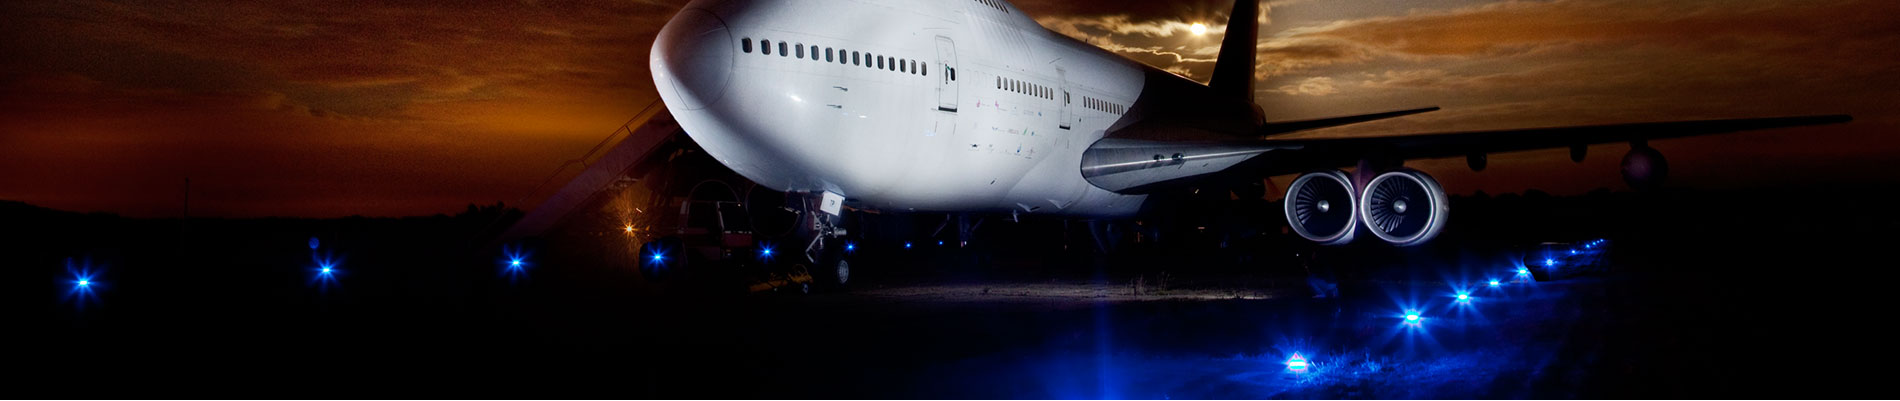 New Airpark Uses Avlite LED Lighting to Enhance Aviation Safety